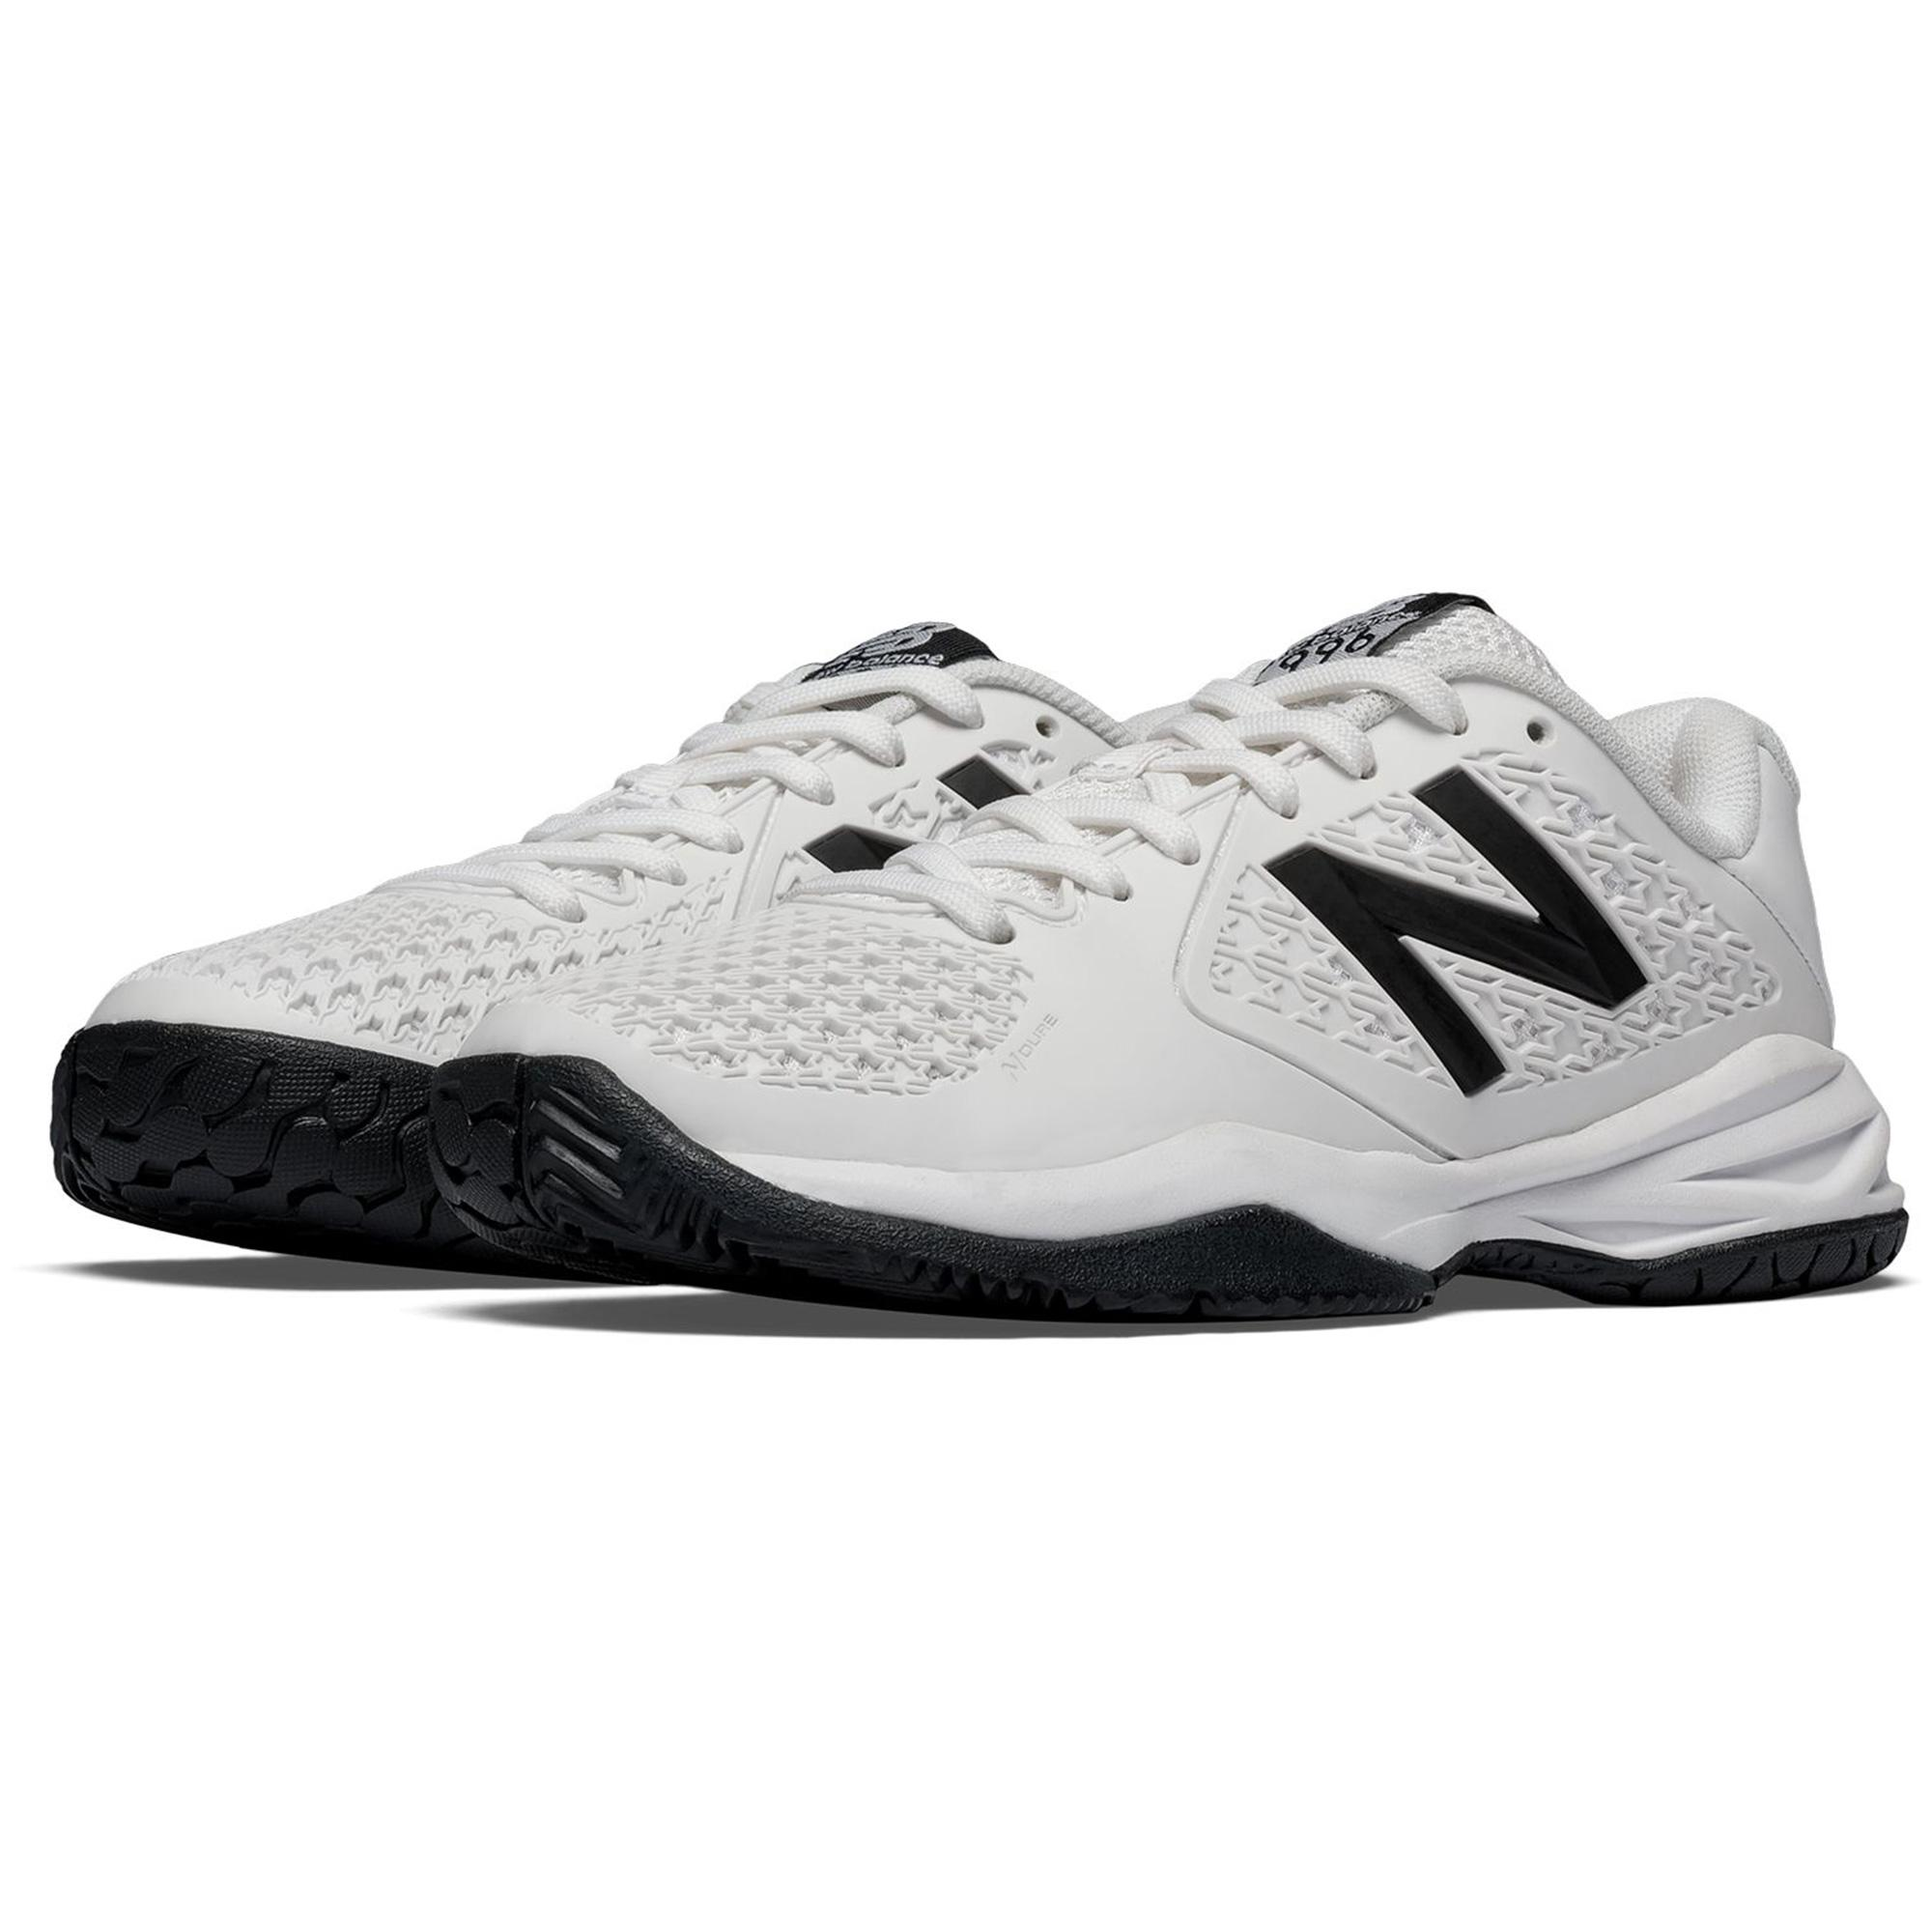 Kid's New Balance Athletic Shoes kids > new balance > athletic (56 matches) Select Sort Newest Highest Rated Name Low Price High Price Show 32 Show 64 Show